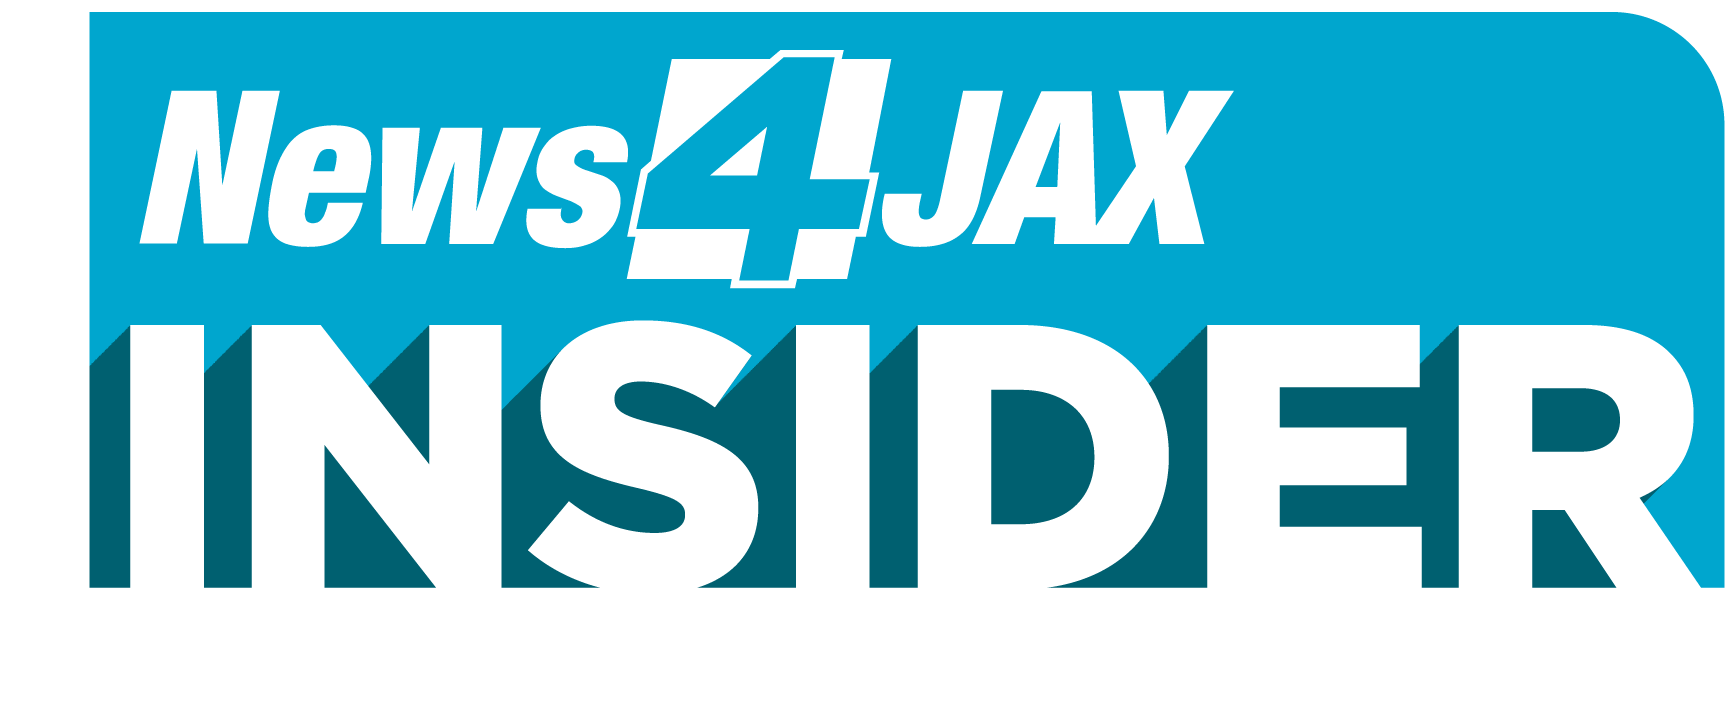 News4JAX Insider Program Blurb